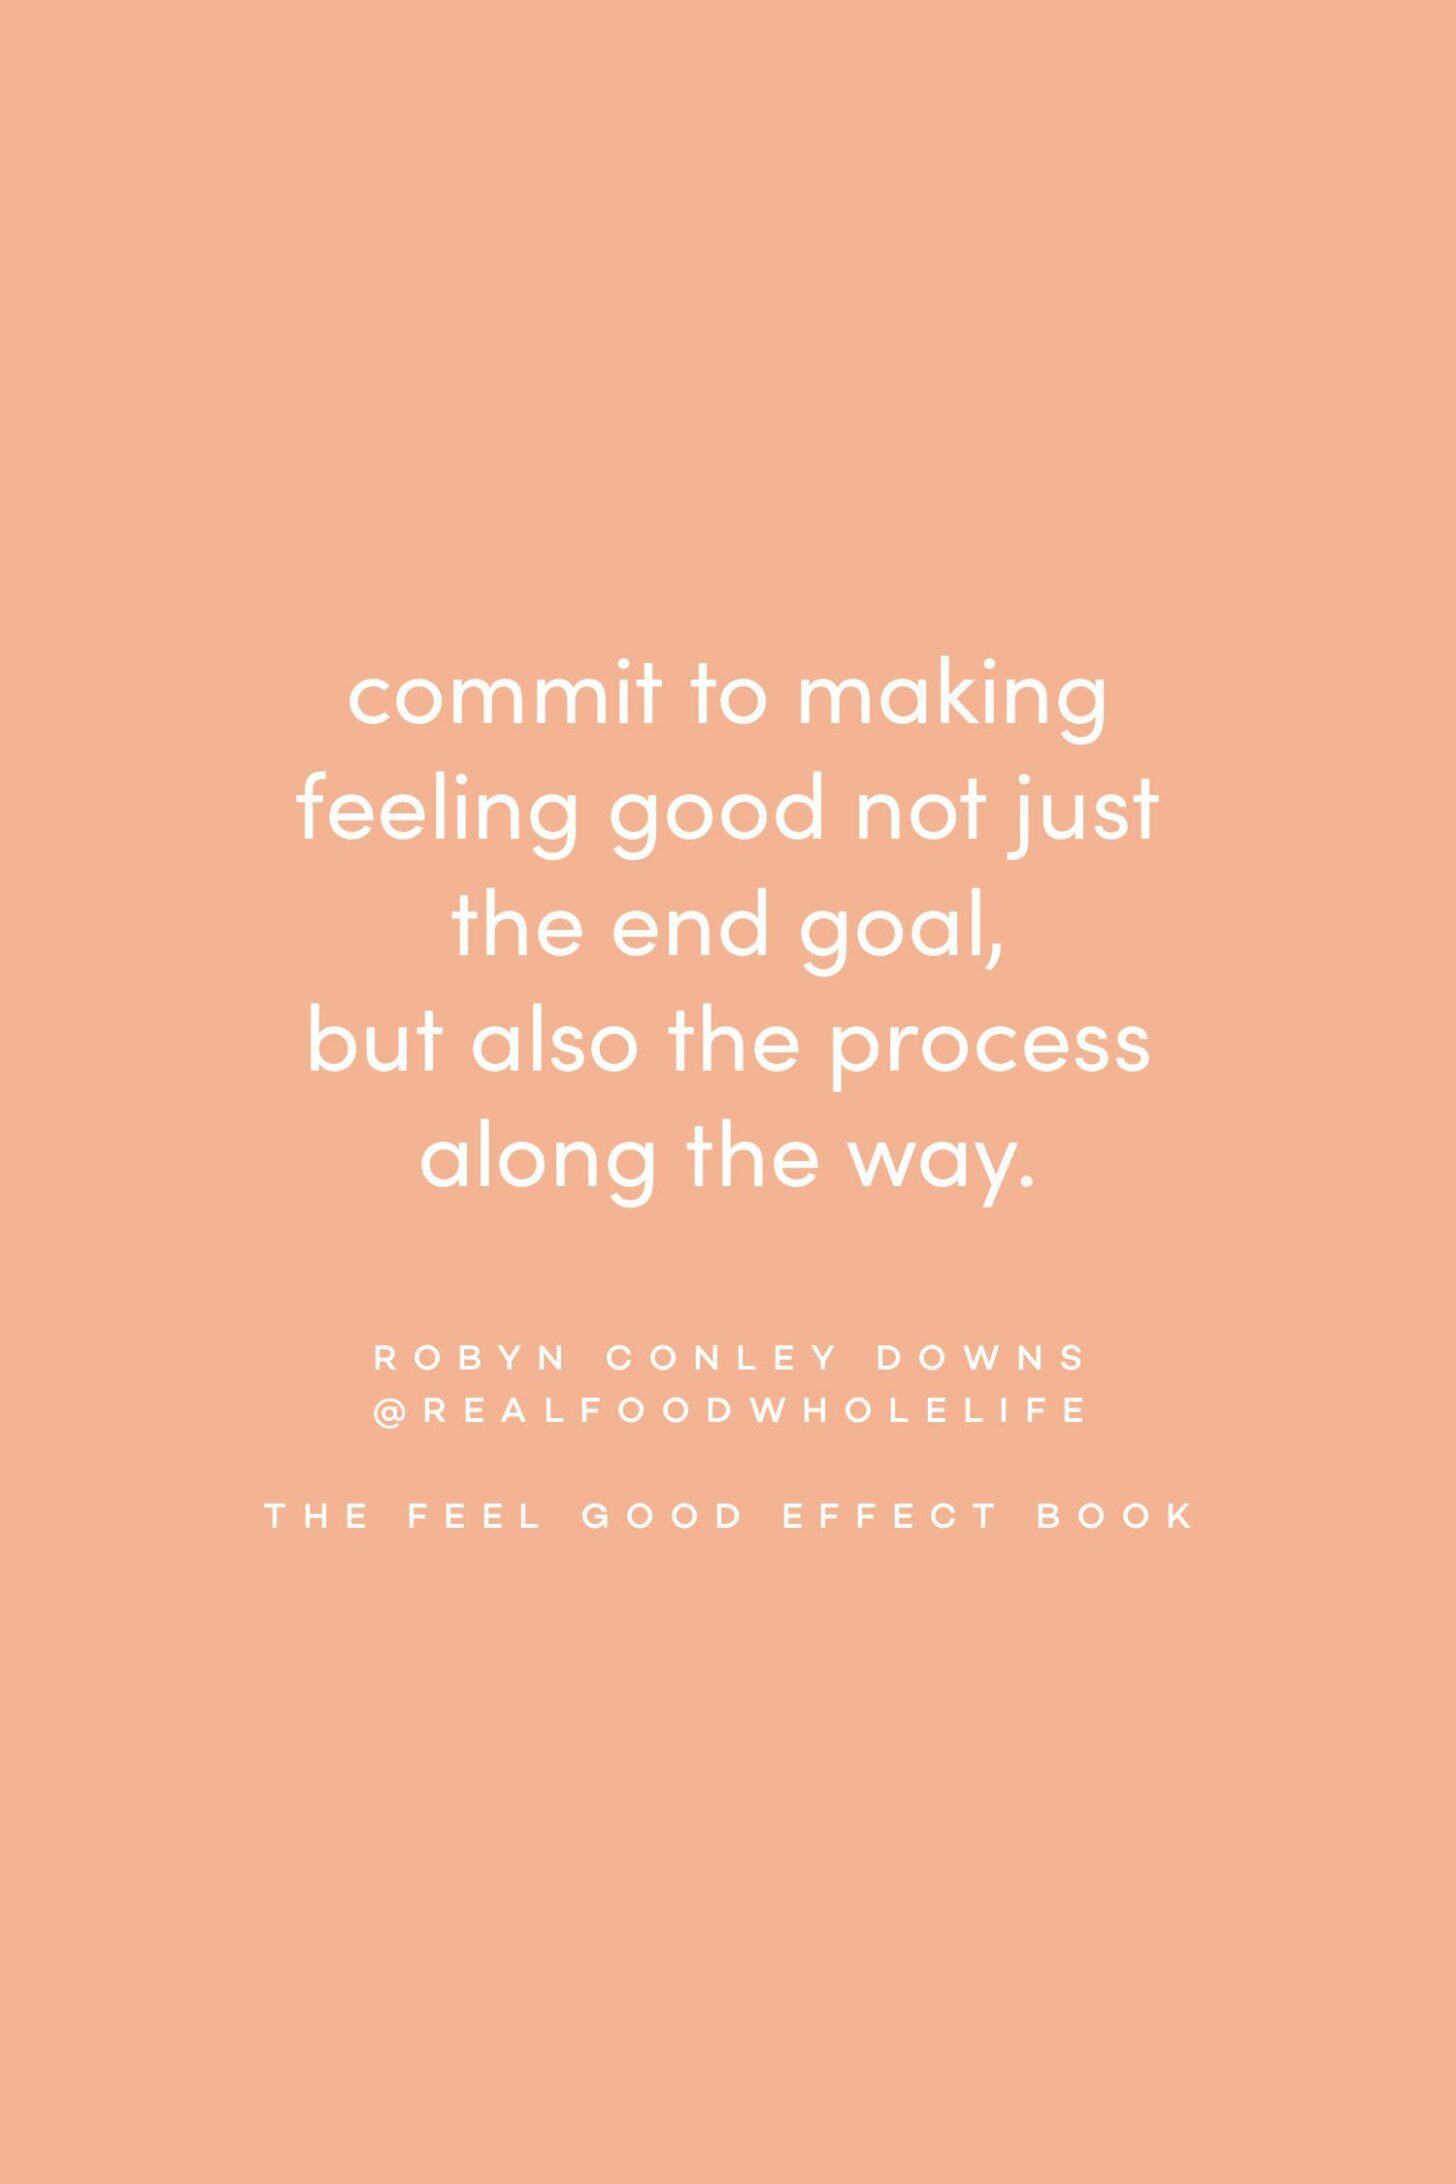 Quote on feeling good by Robyn Conley Downs on the Feel Good Effect Podcast #realfoodwholelife #feelgoodeffectpodcast #motivationalquote #inspirationalquote #positivityquote #goalsettingquote #productivityquote #meaningfulquote  #wellnessquote